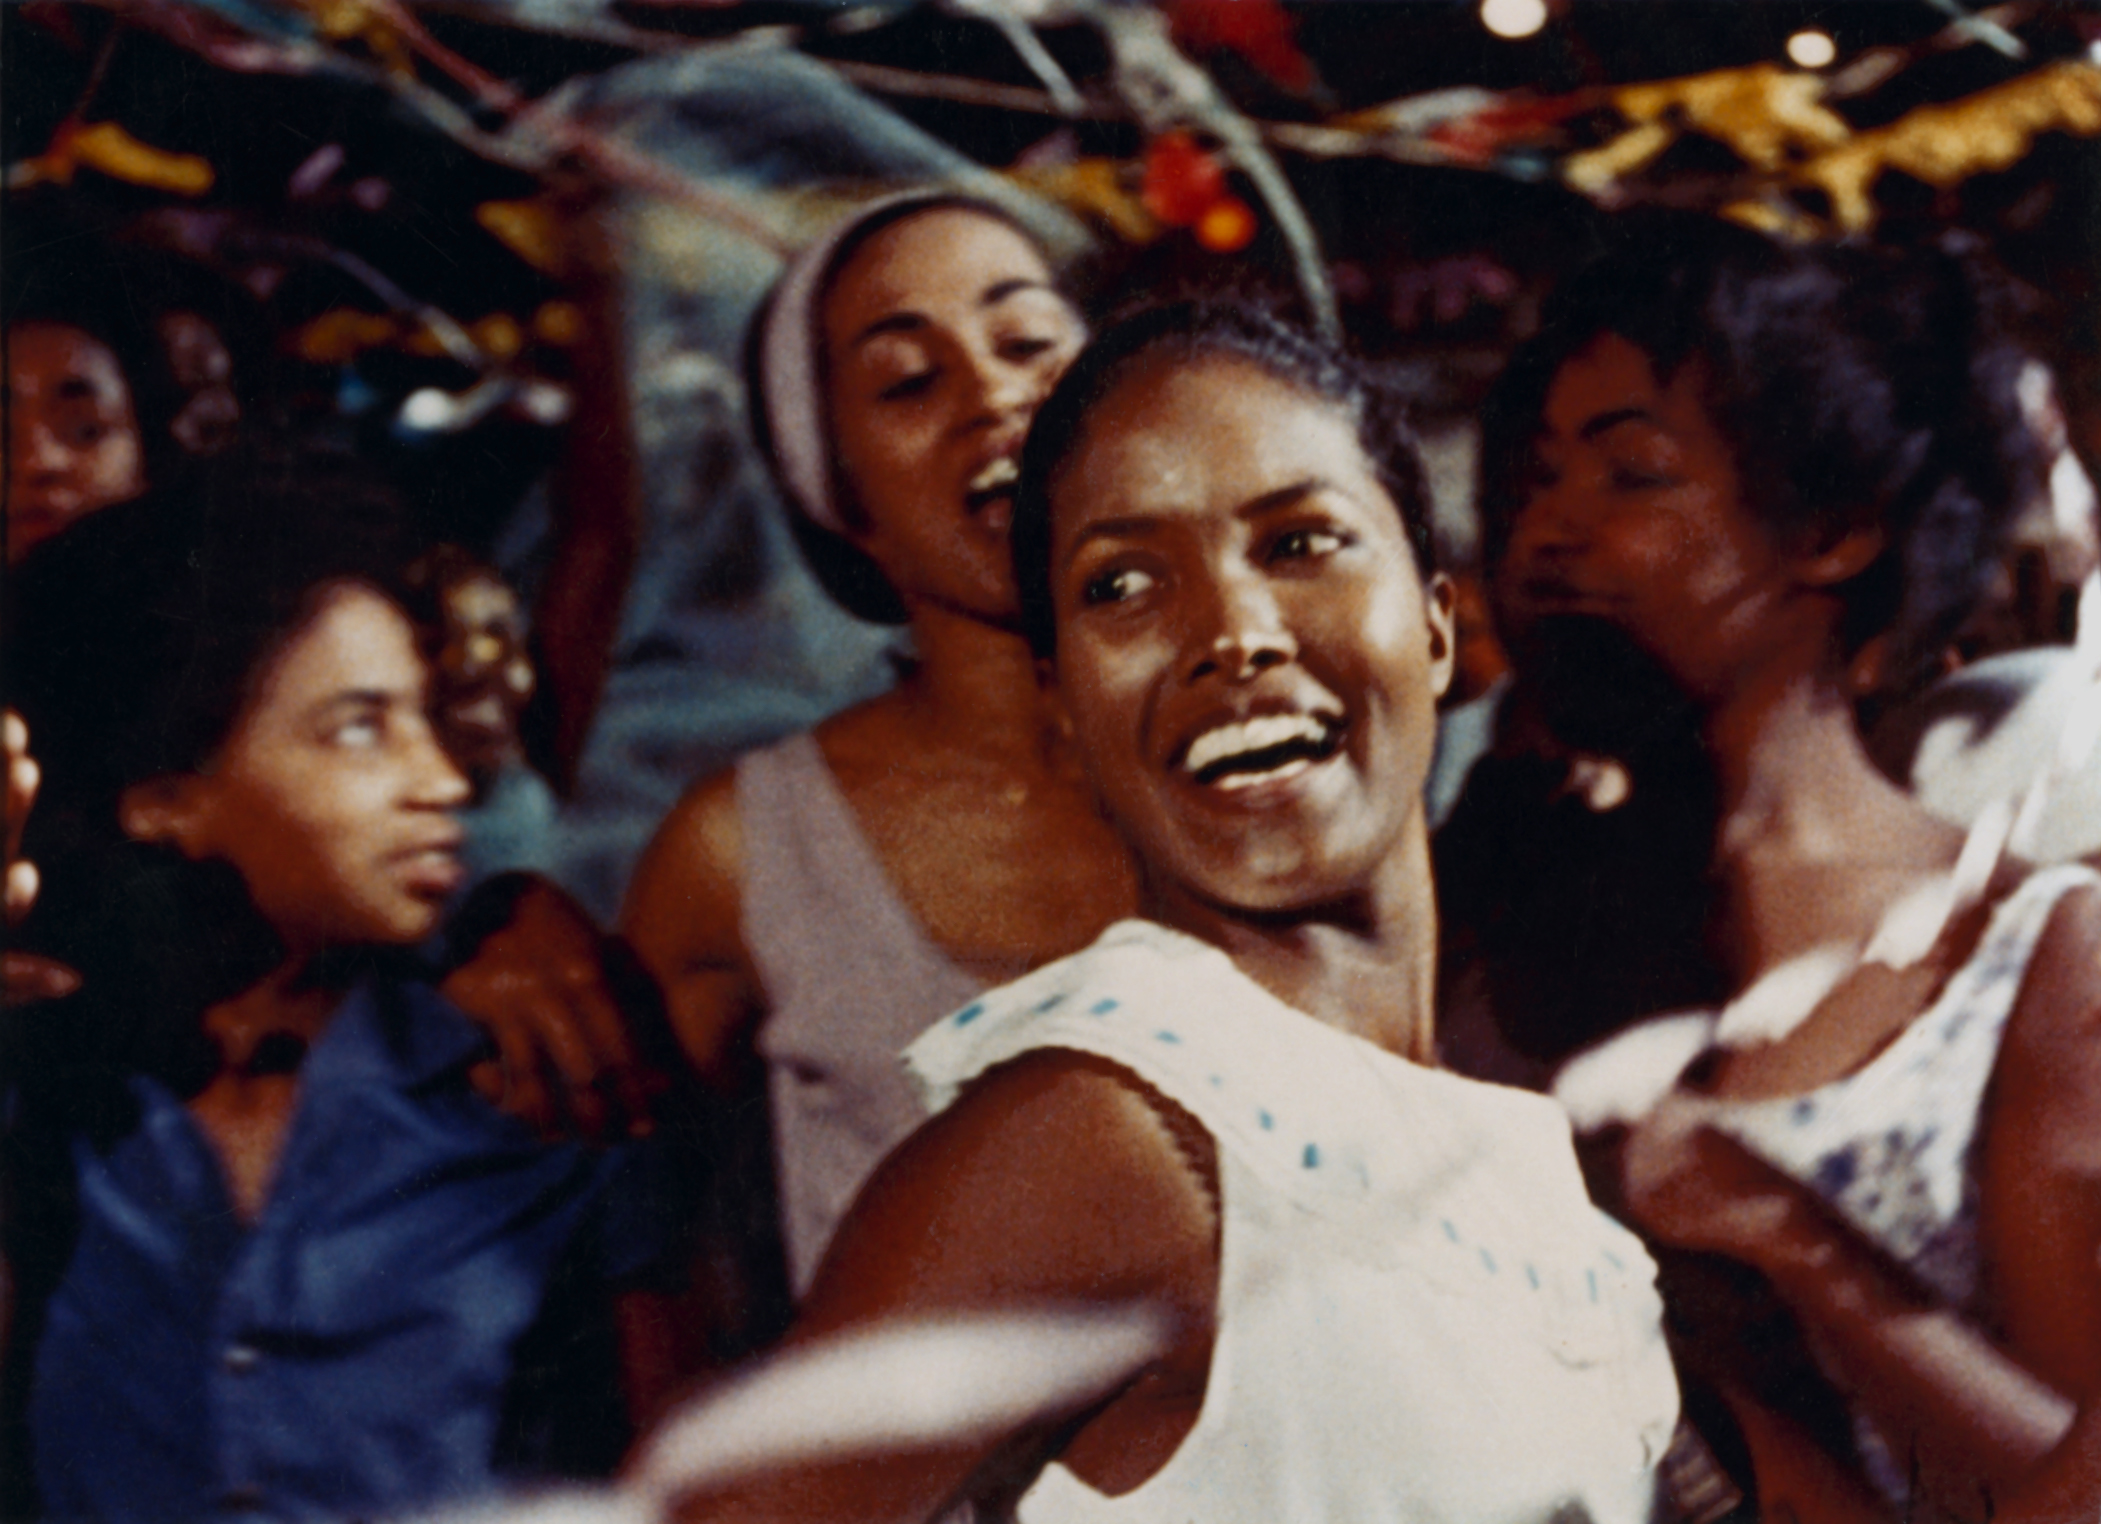 Image Caption: A still from Black Orpheus—Click to read this article.